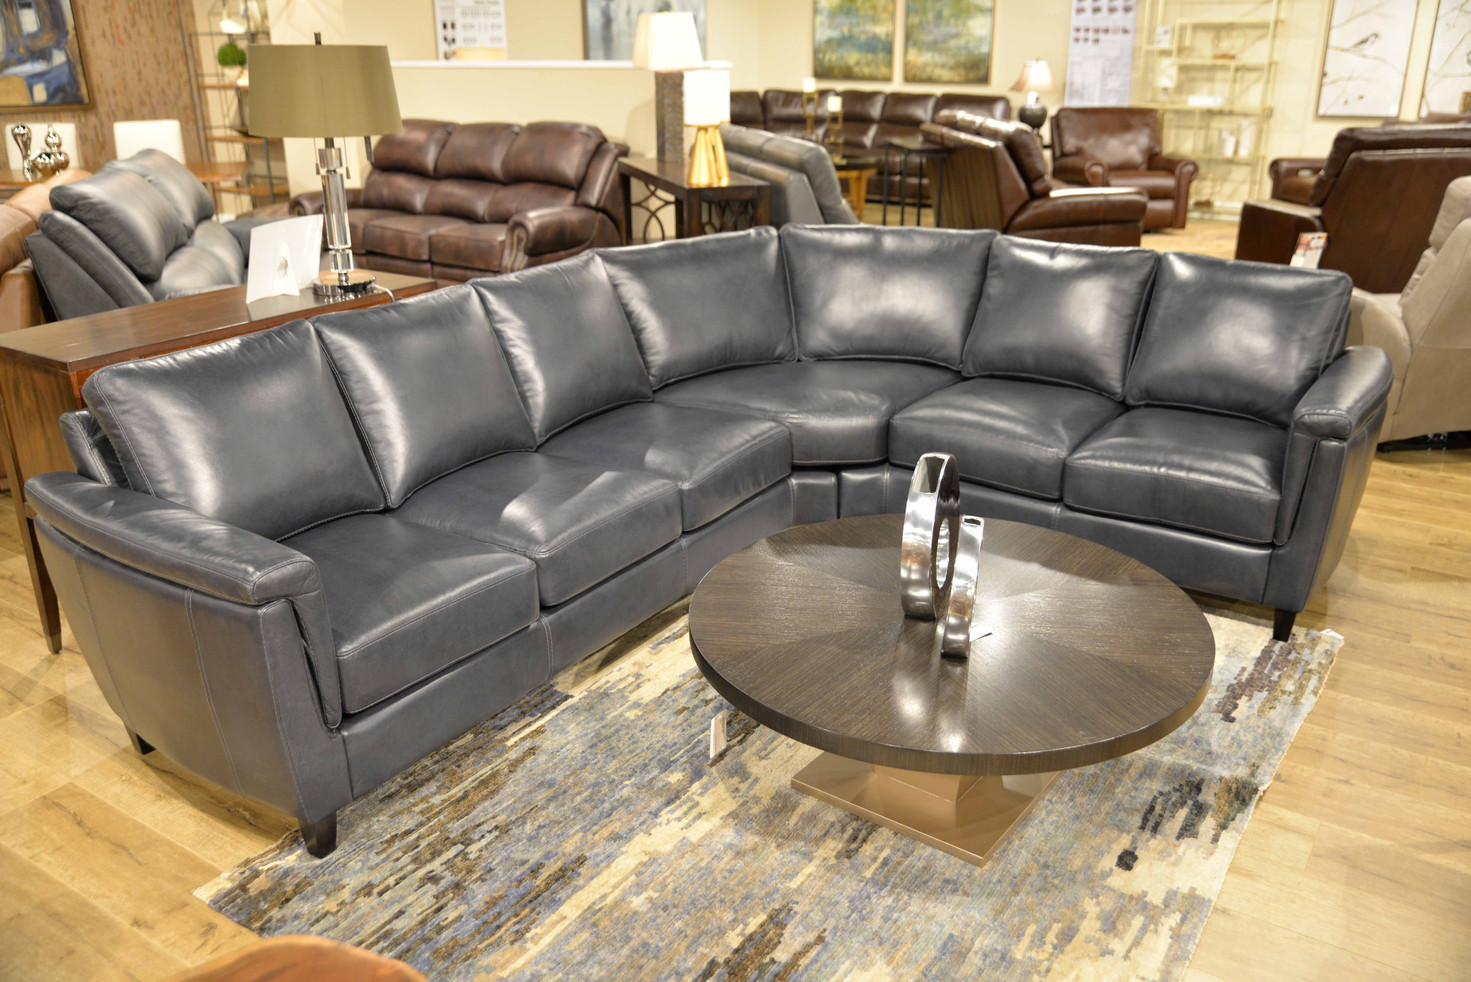 Ellis Sectional in Grey Leather